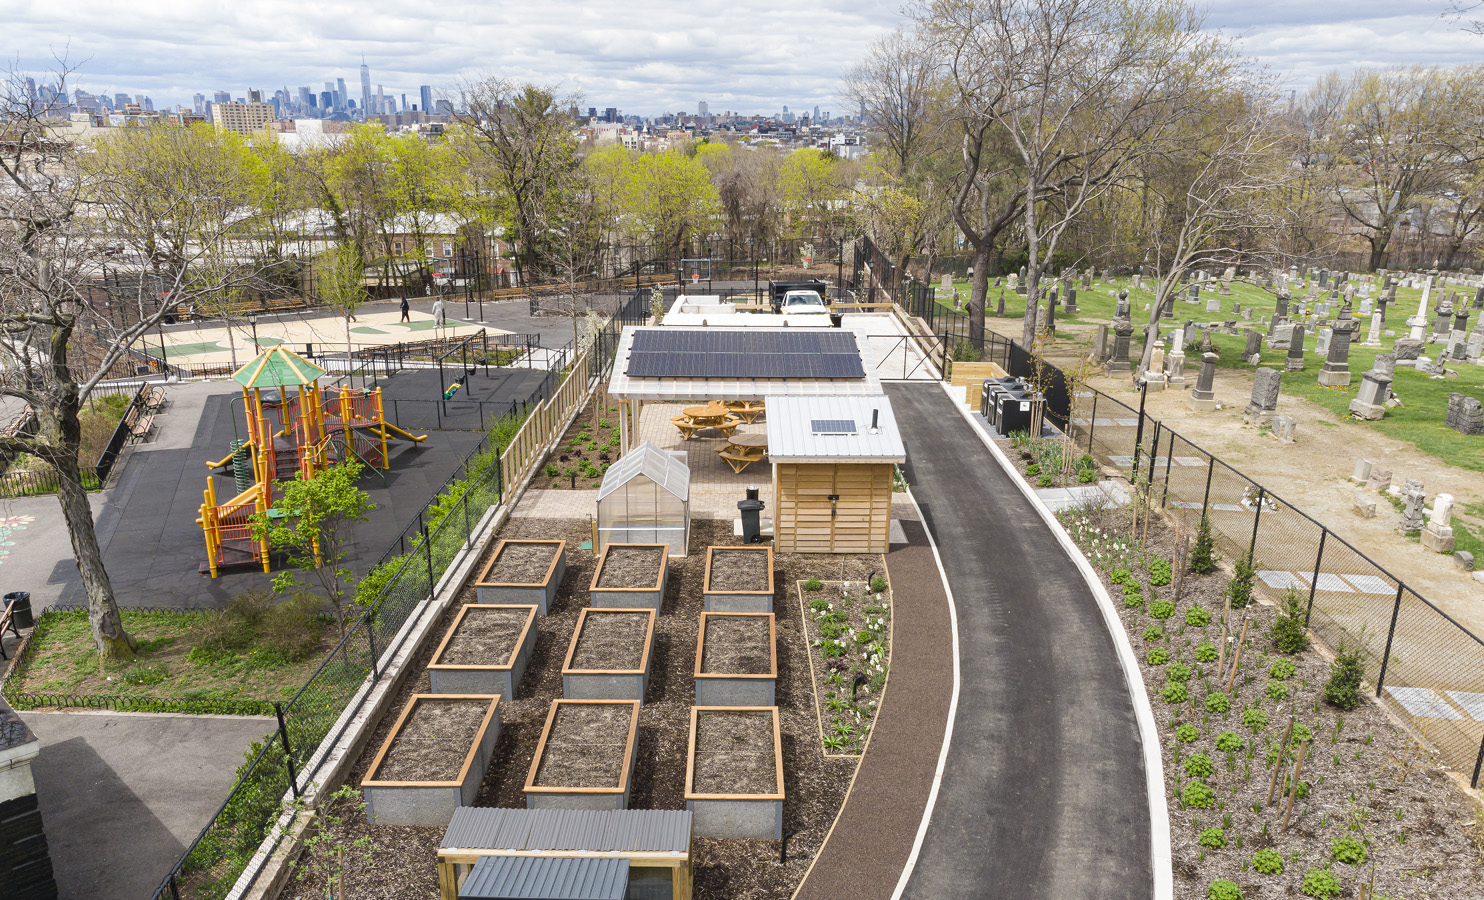 NYC Nonprofit Revamps Community Garden in Central Brooklyn, Bringing in Arts and Compost Programs